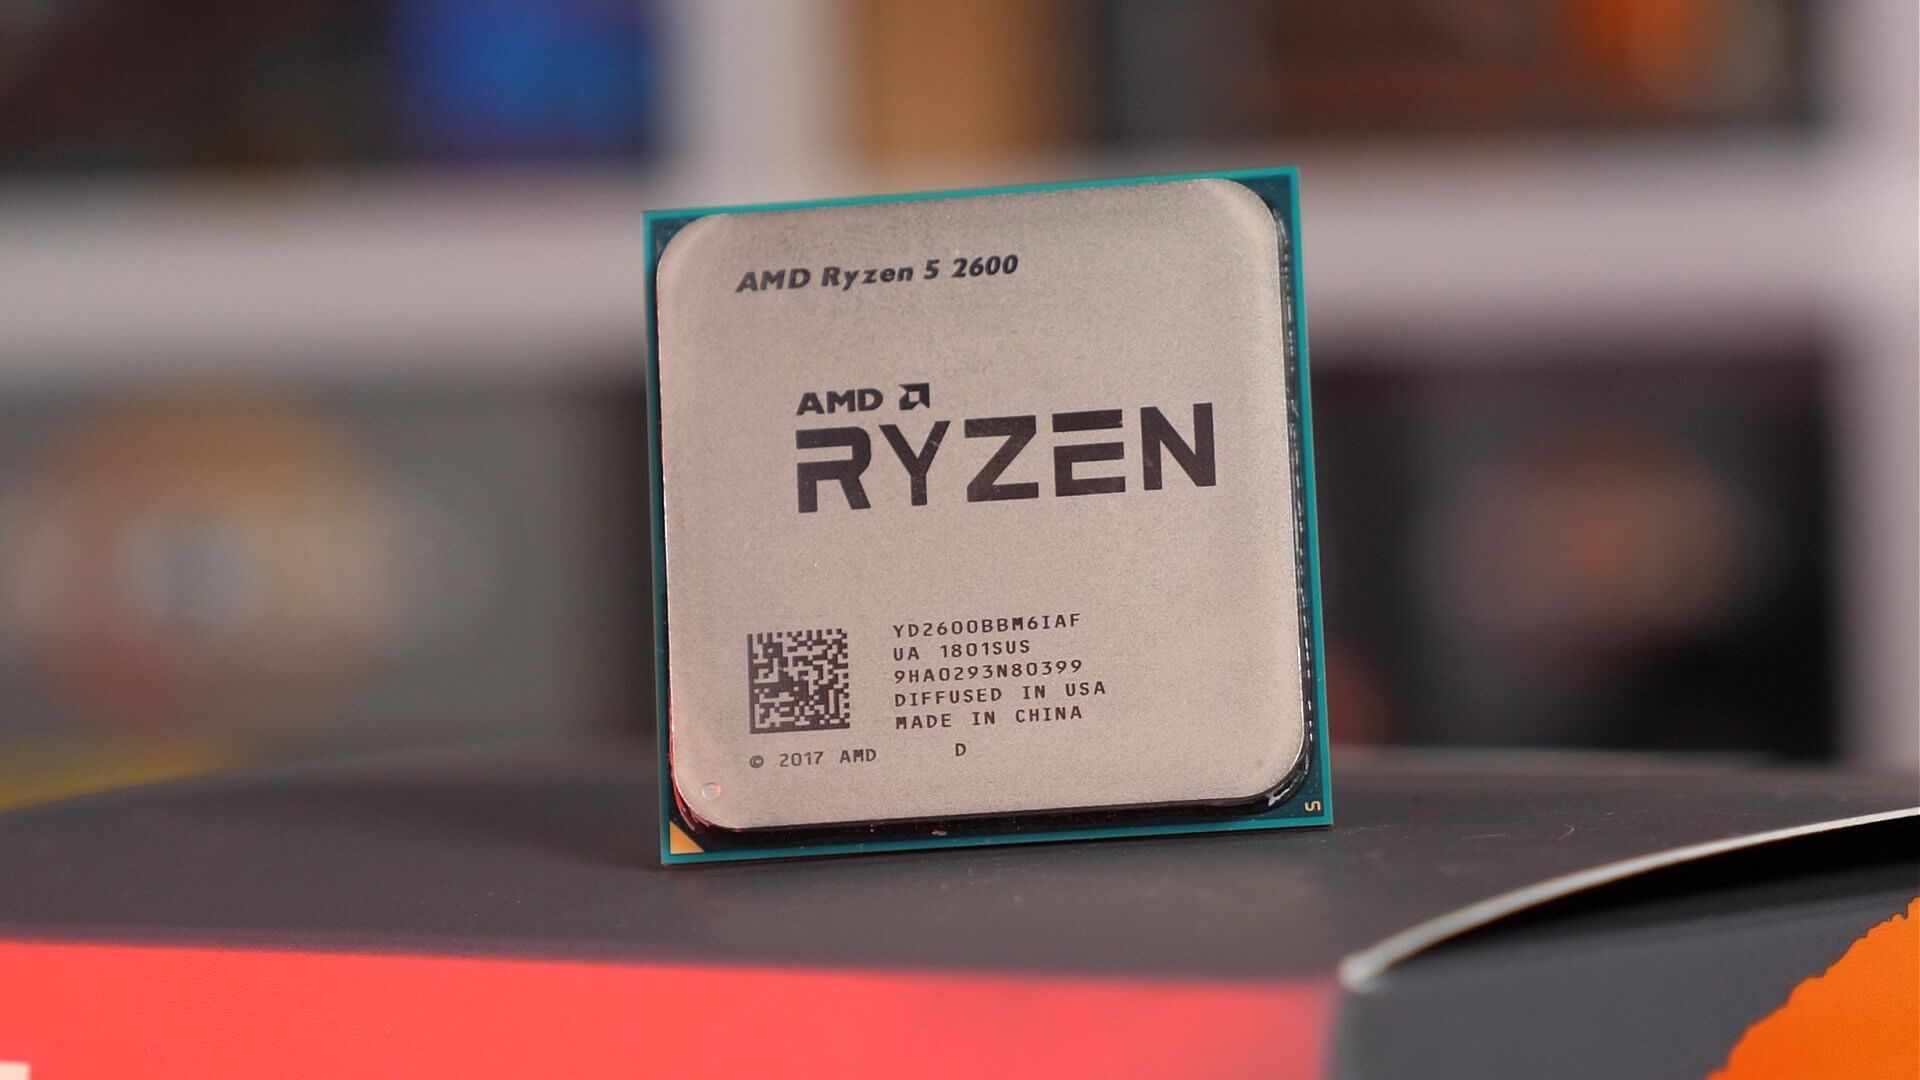 AMD Ryzen 5 2600 Review > Temperatures & What to Buy - TechSpot